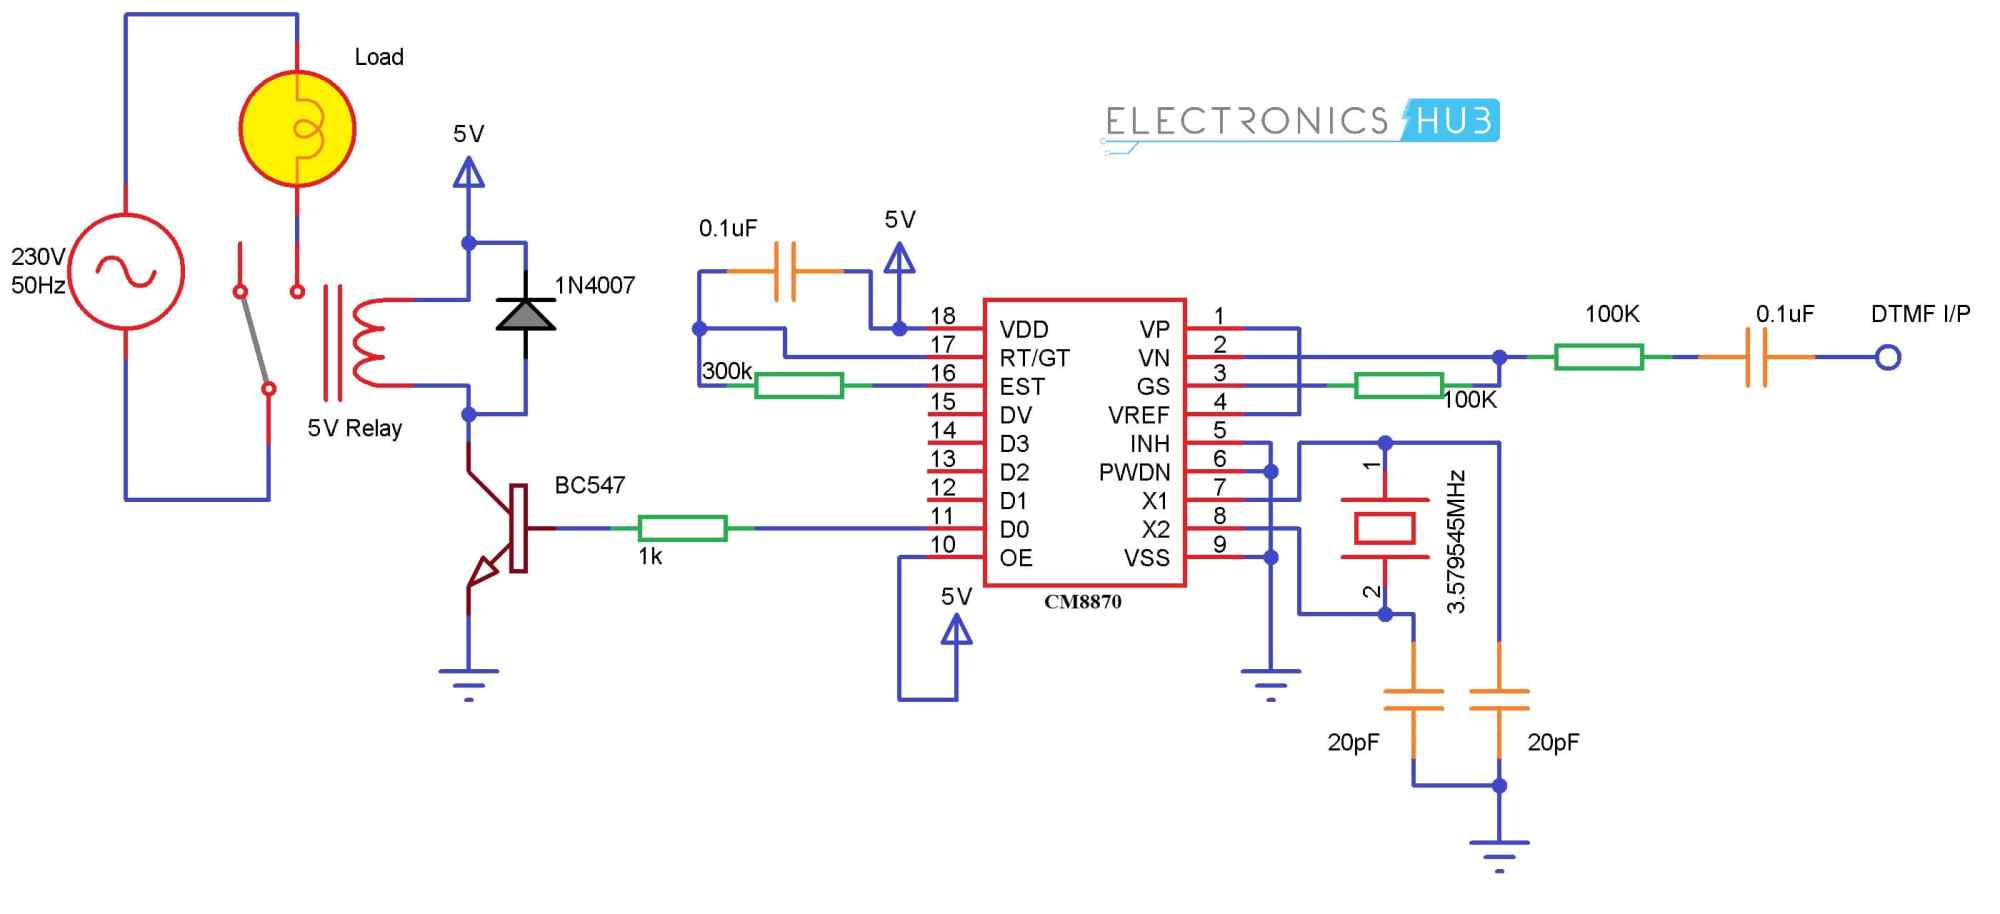 hight resolution of mobile controlled home appliances without microcontroller cellphone controlled home appliances circuit diagram without microcontroller